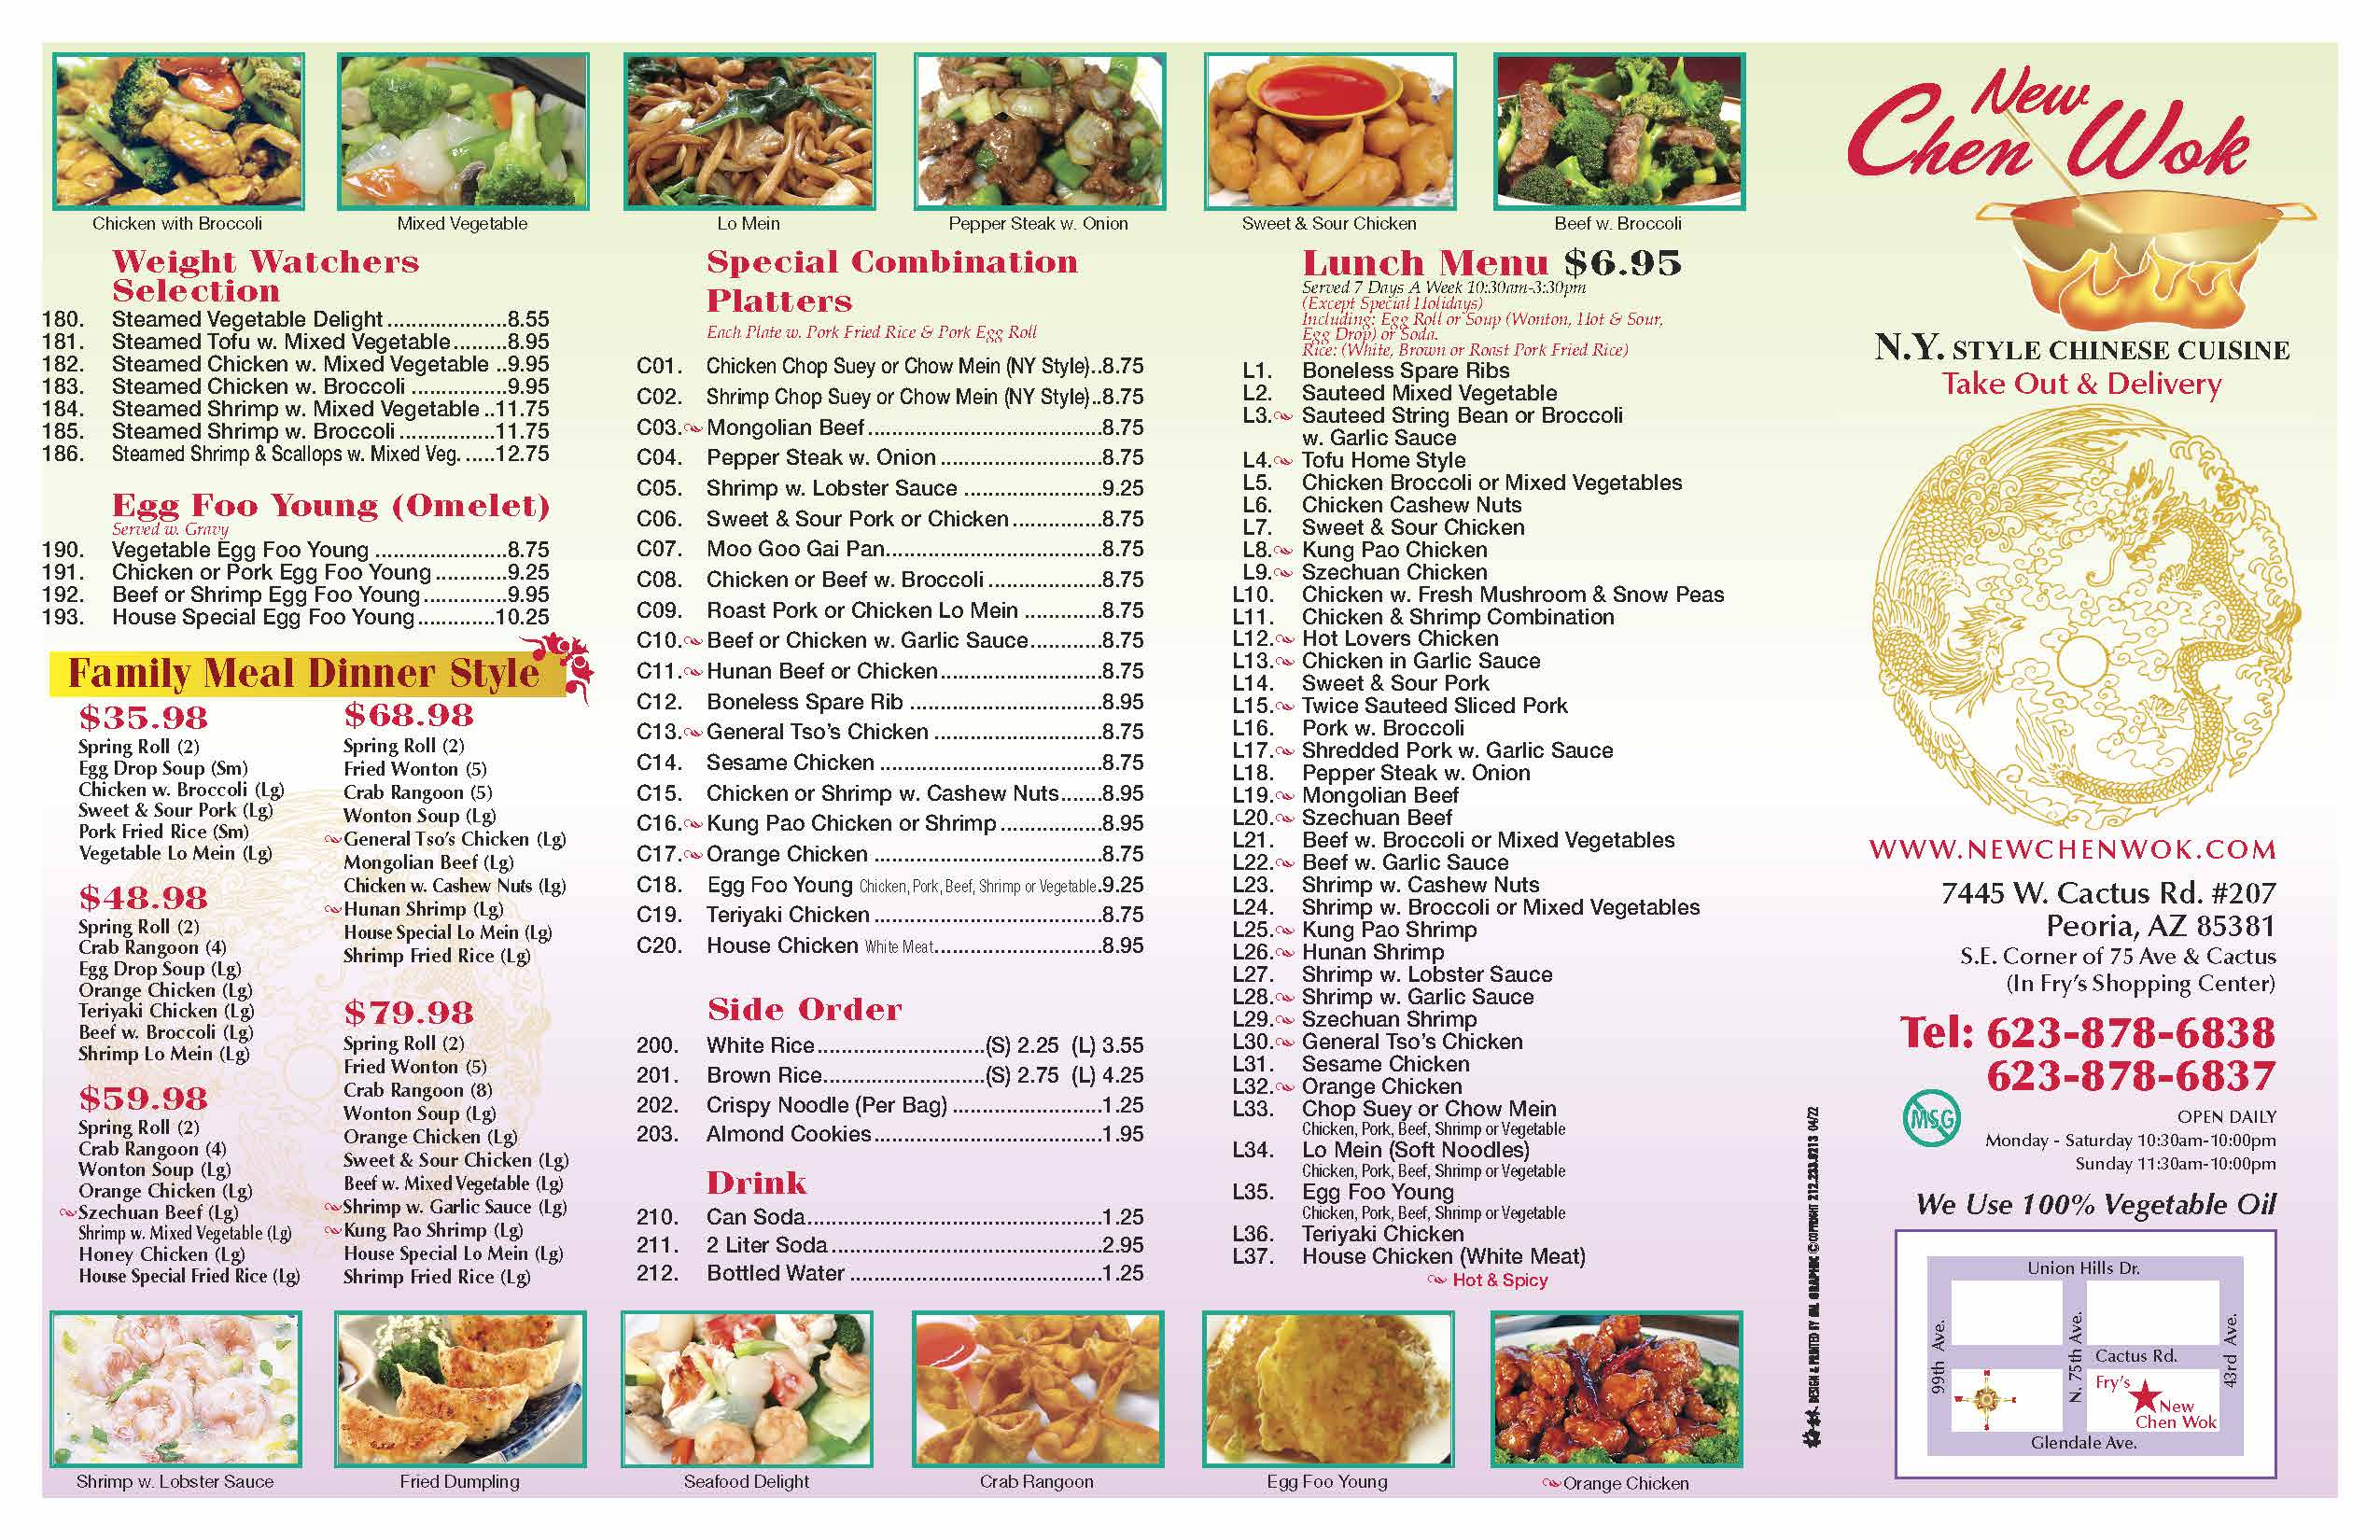 Menu Newchenwok Website